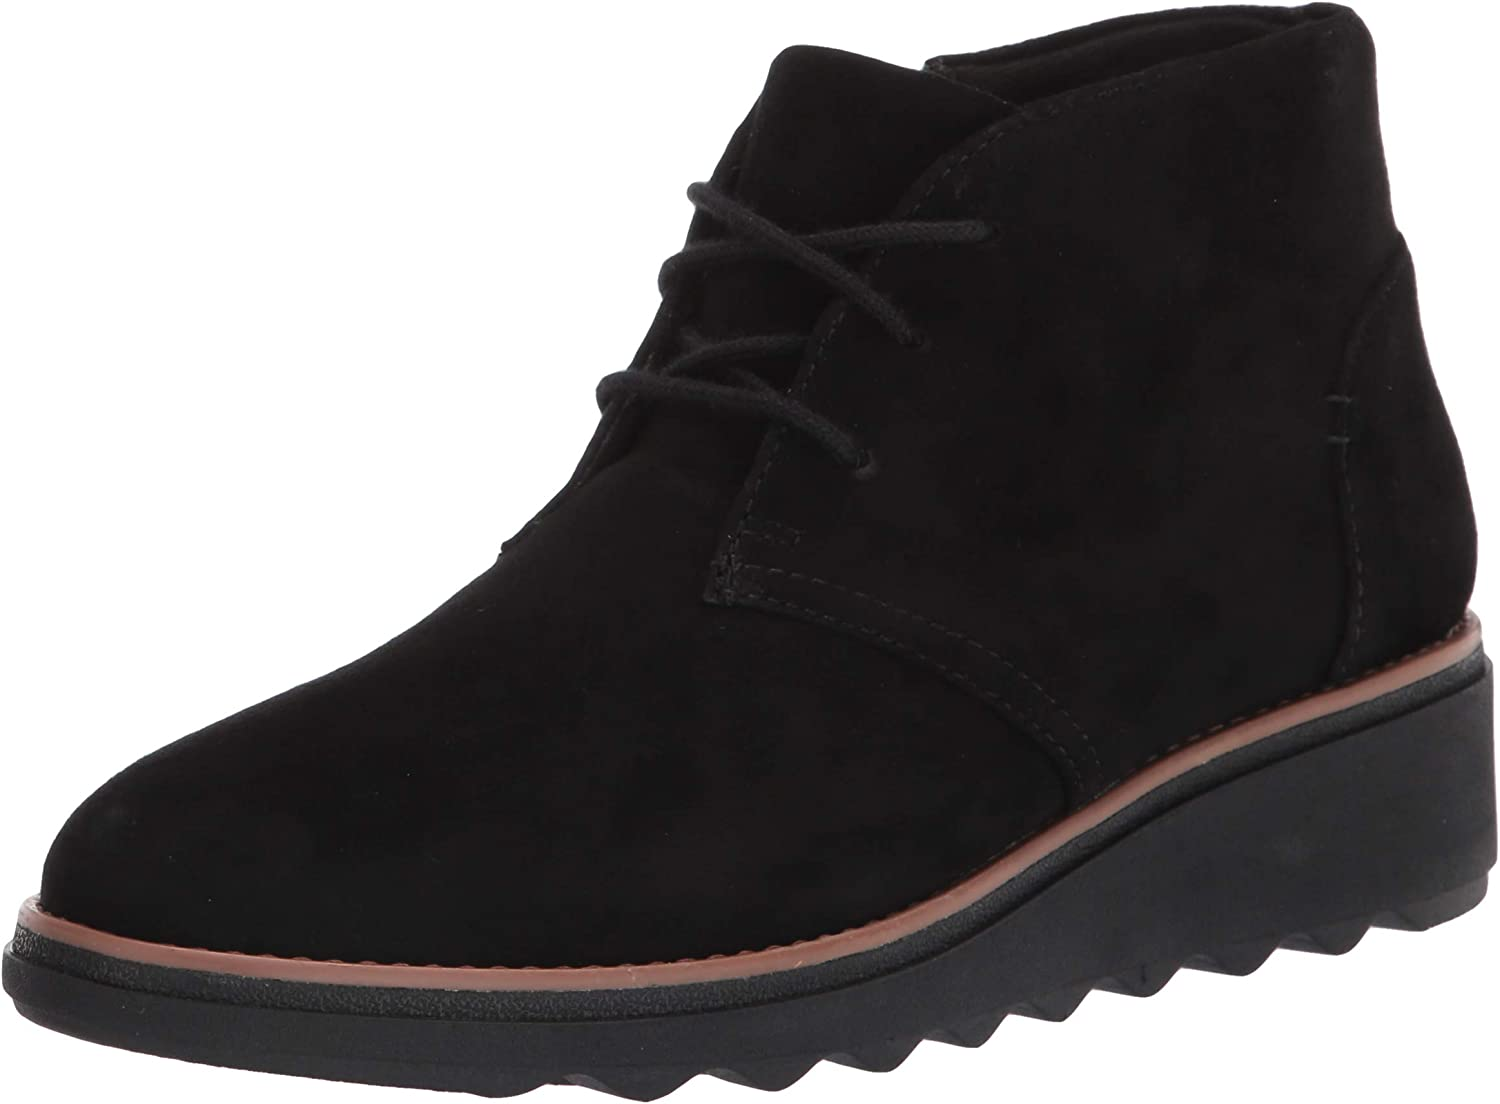 Clarks Women's Sharon Hop Ankle Boot